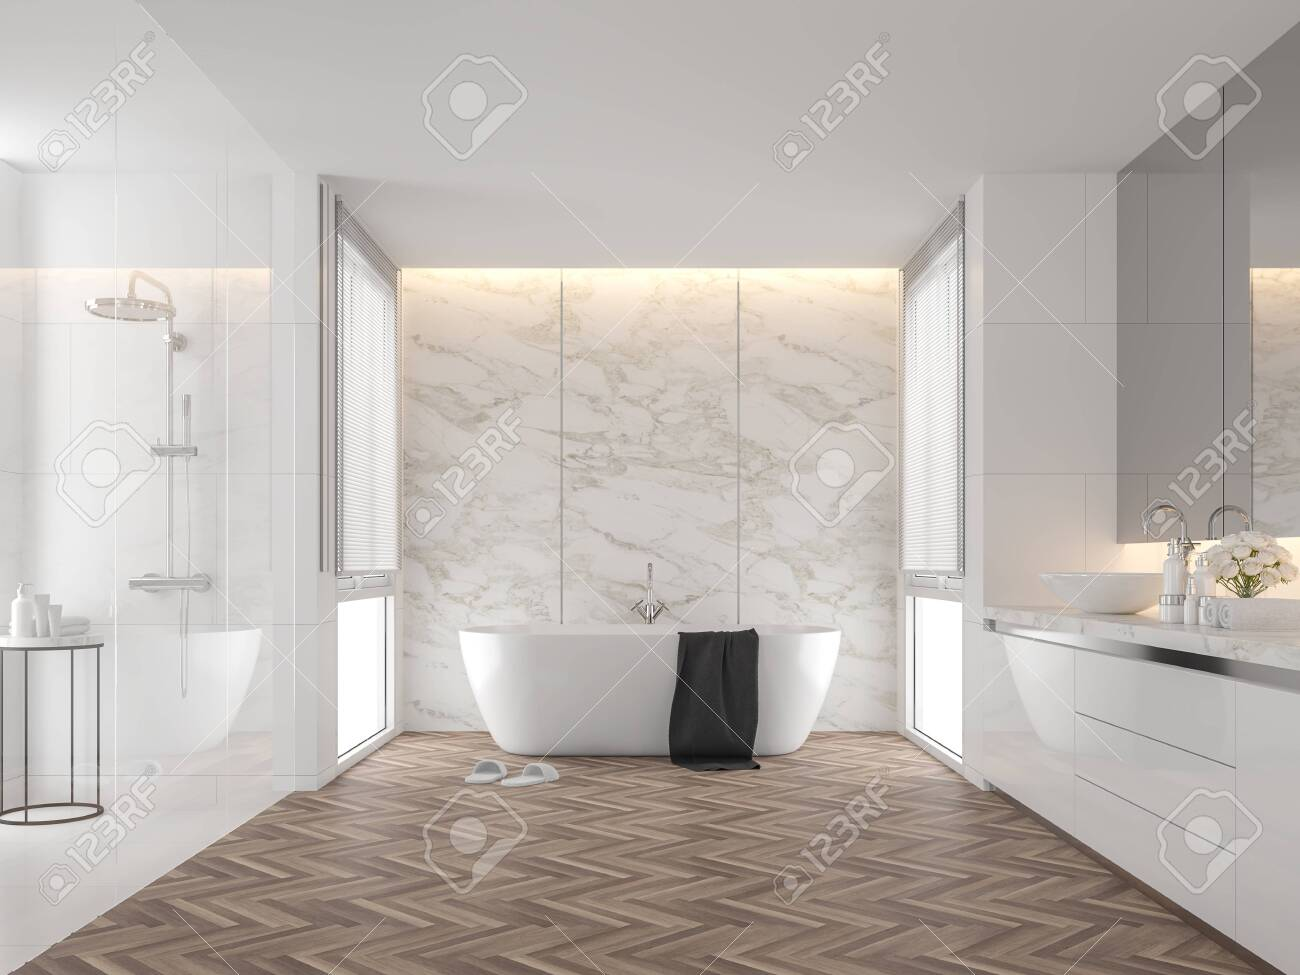 Luxury bathroom with white marble backdrop walls 3d render,The.. on wood marble, wood bathroom flooring, wood luxury bedroom, wood luxury kitchens,